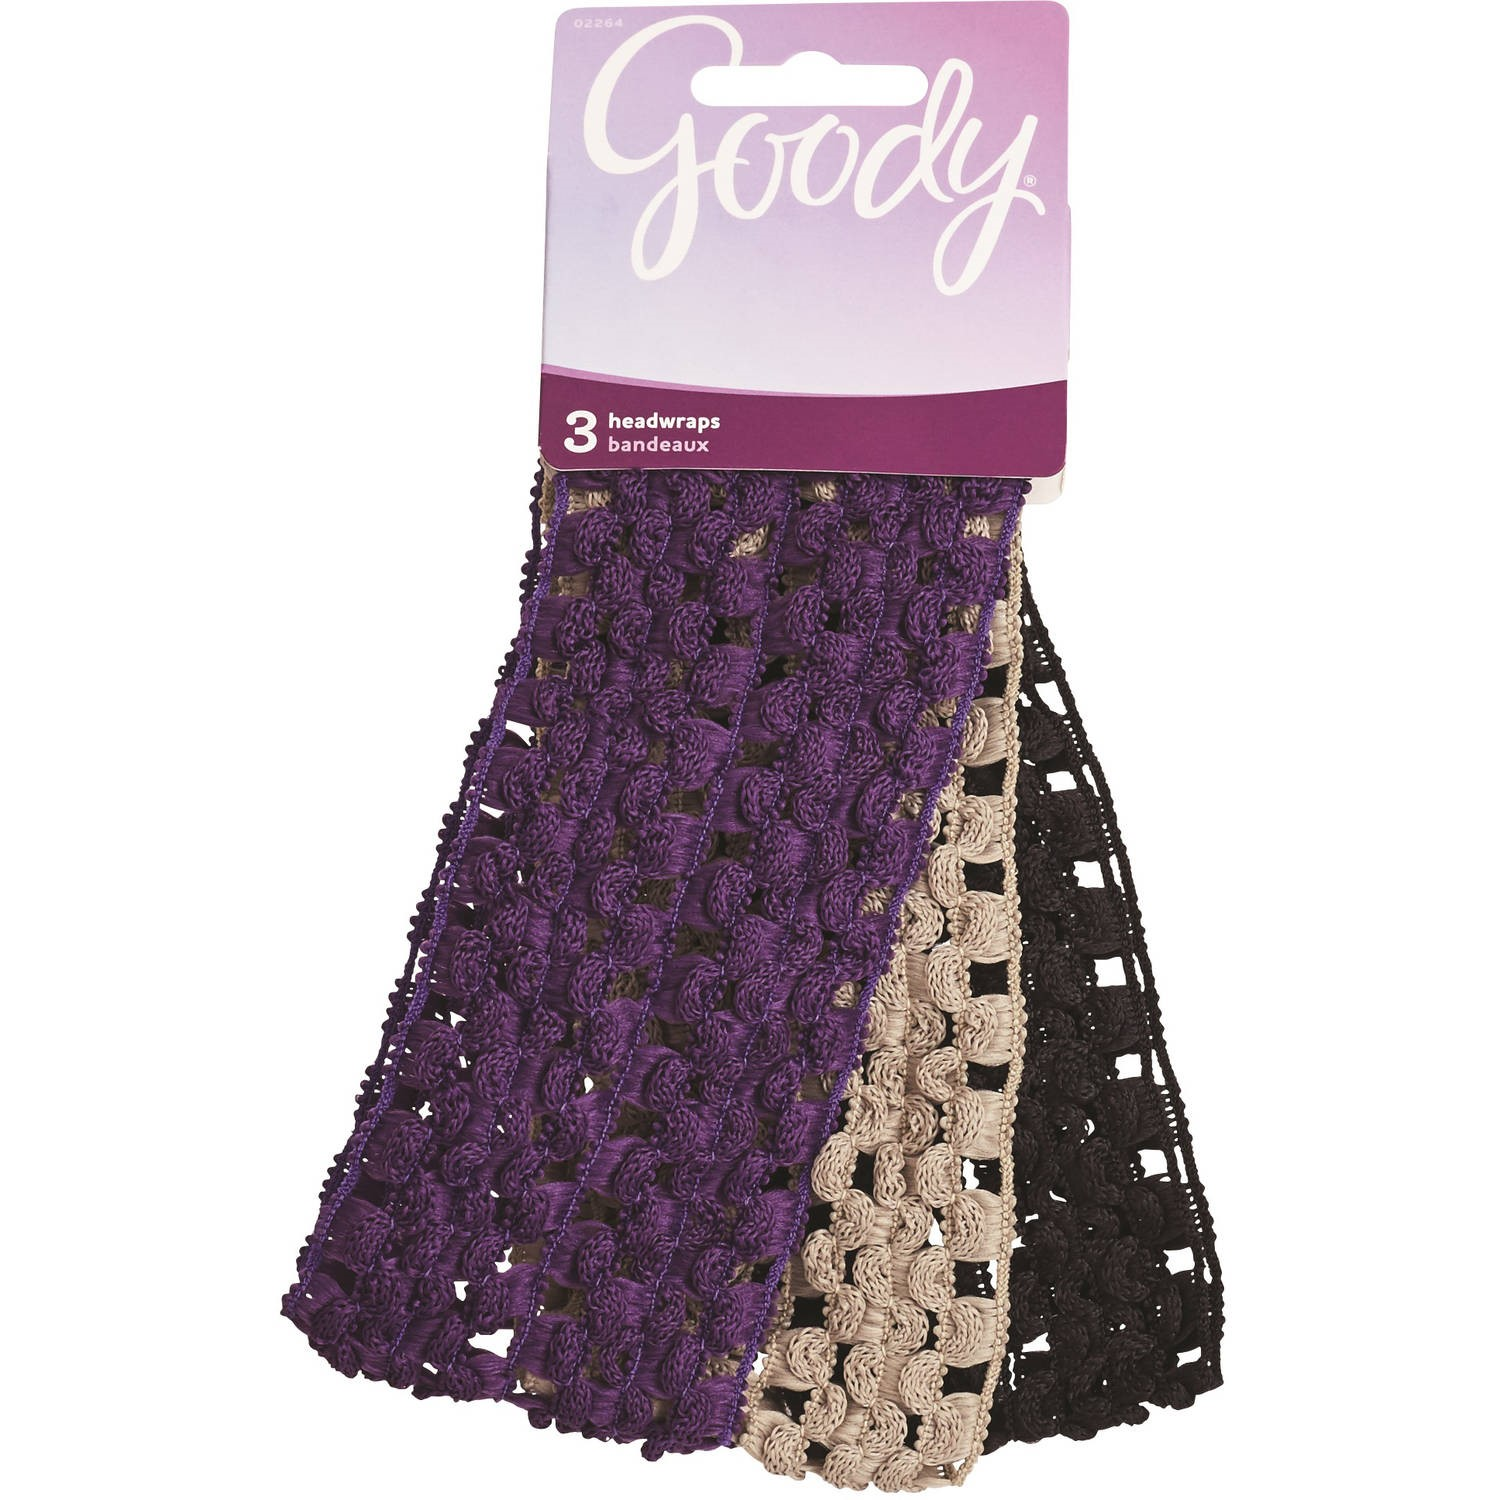 Goody Styling Essentials Ouchless Headwrap, Crochet, 3 Count